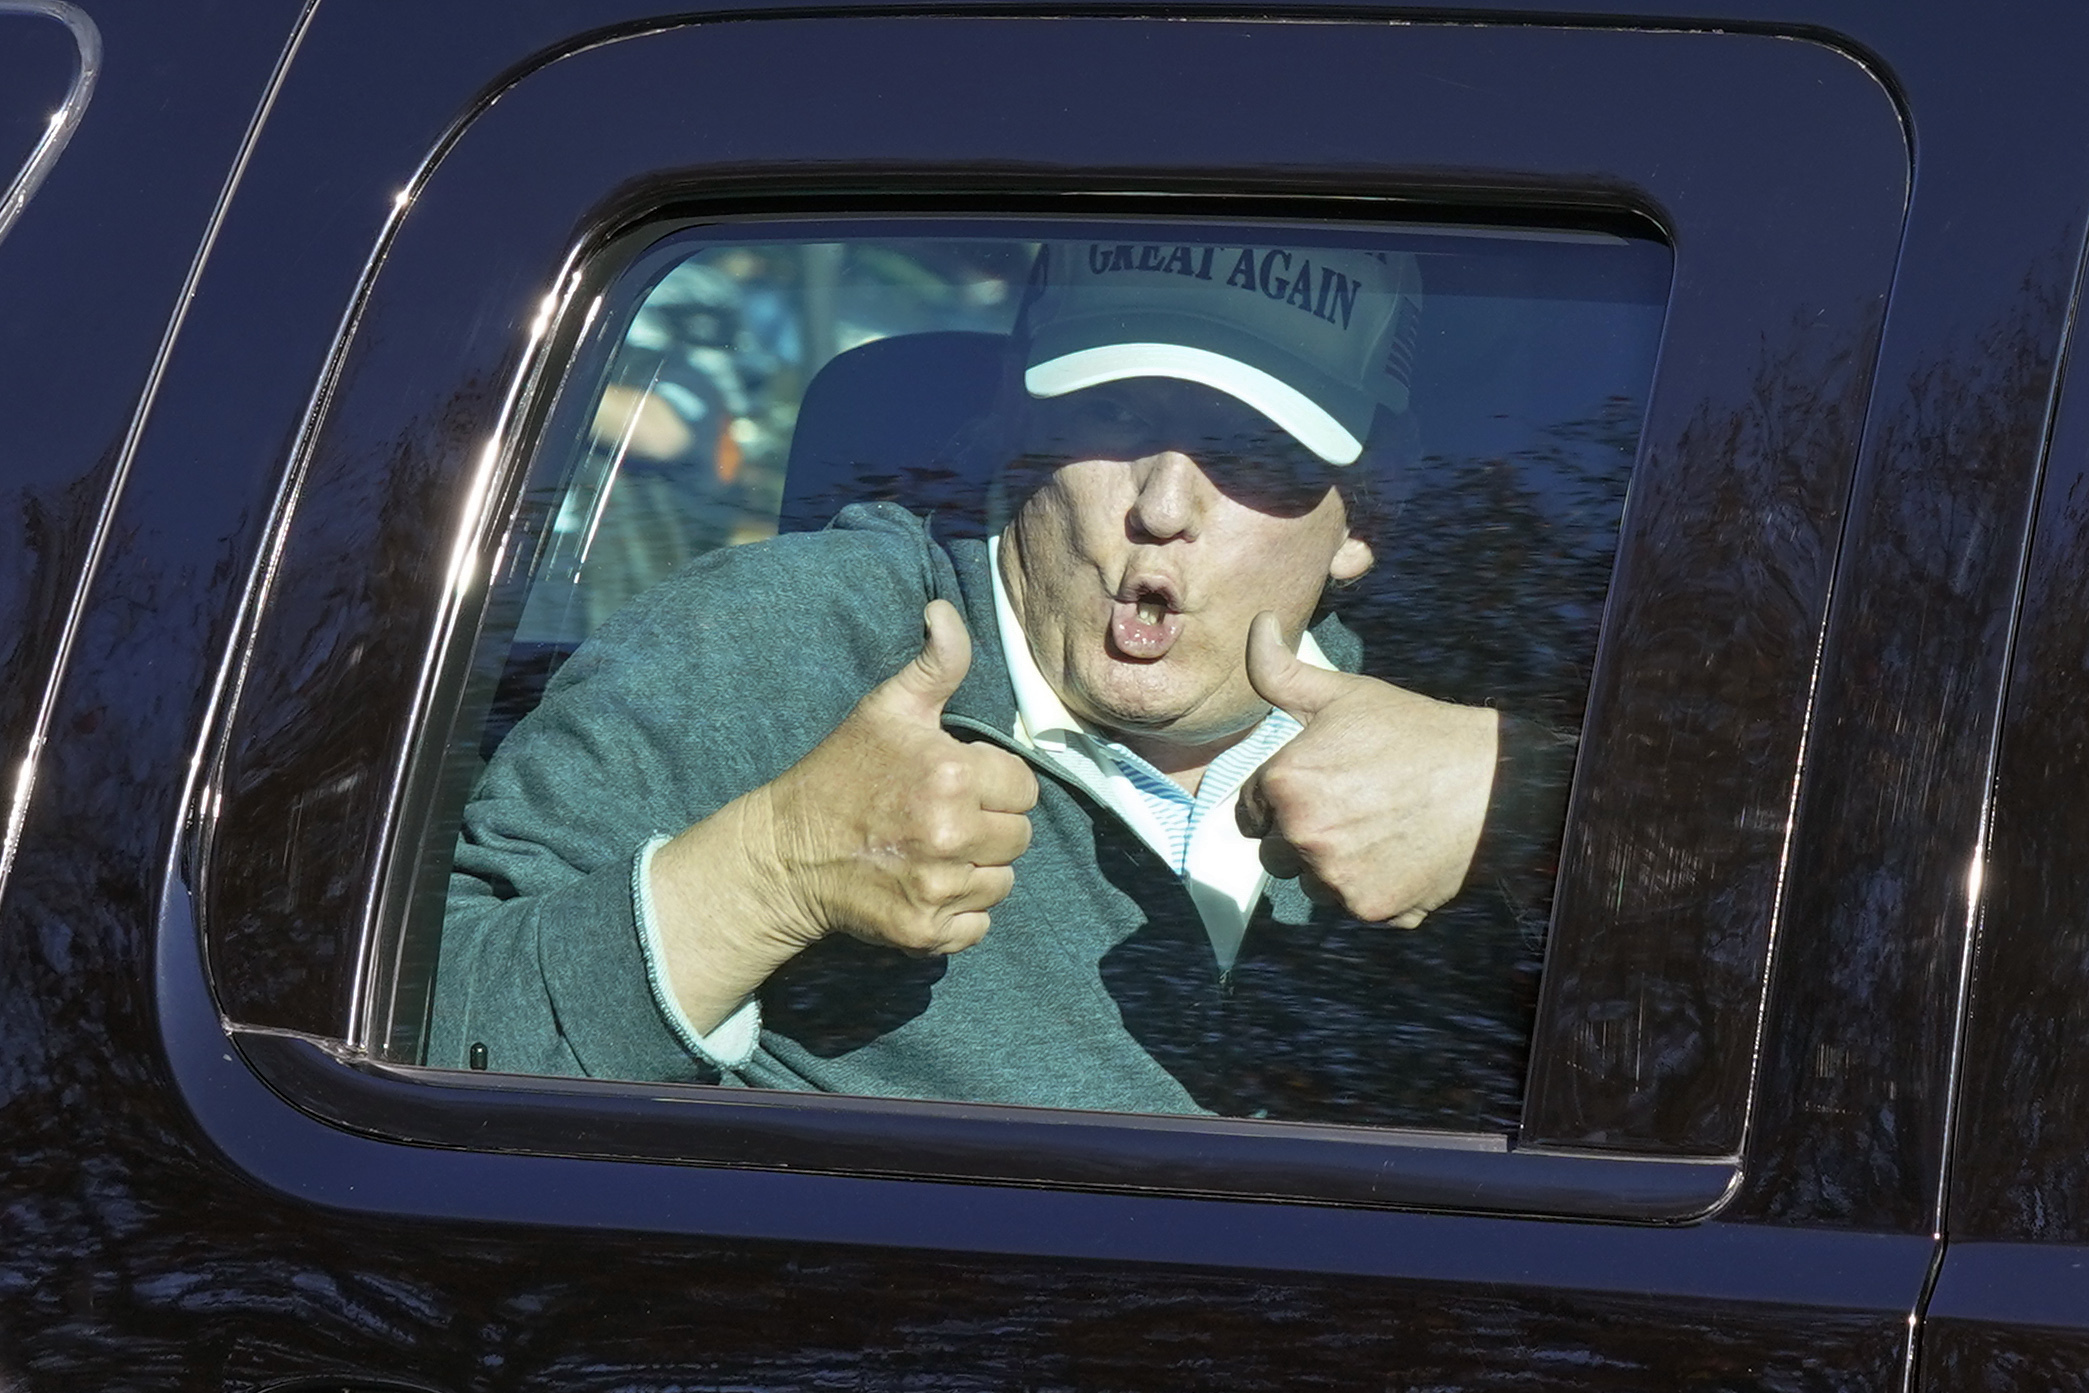 President Donald Trump gives two thumbs up to supporters as he departs after playing golf at the Trump National Golf Club in Sterling Va., Sunday Nov. 8, 2020. (AP Photo/Steve Helber)